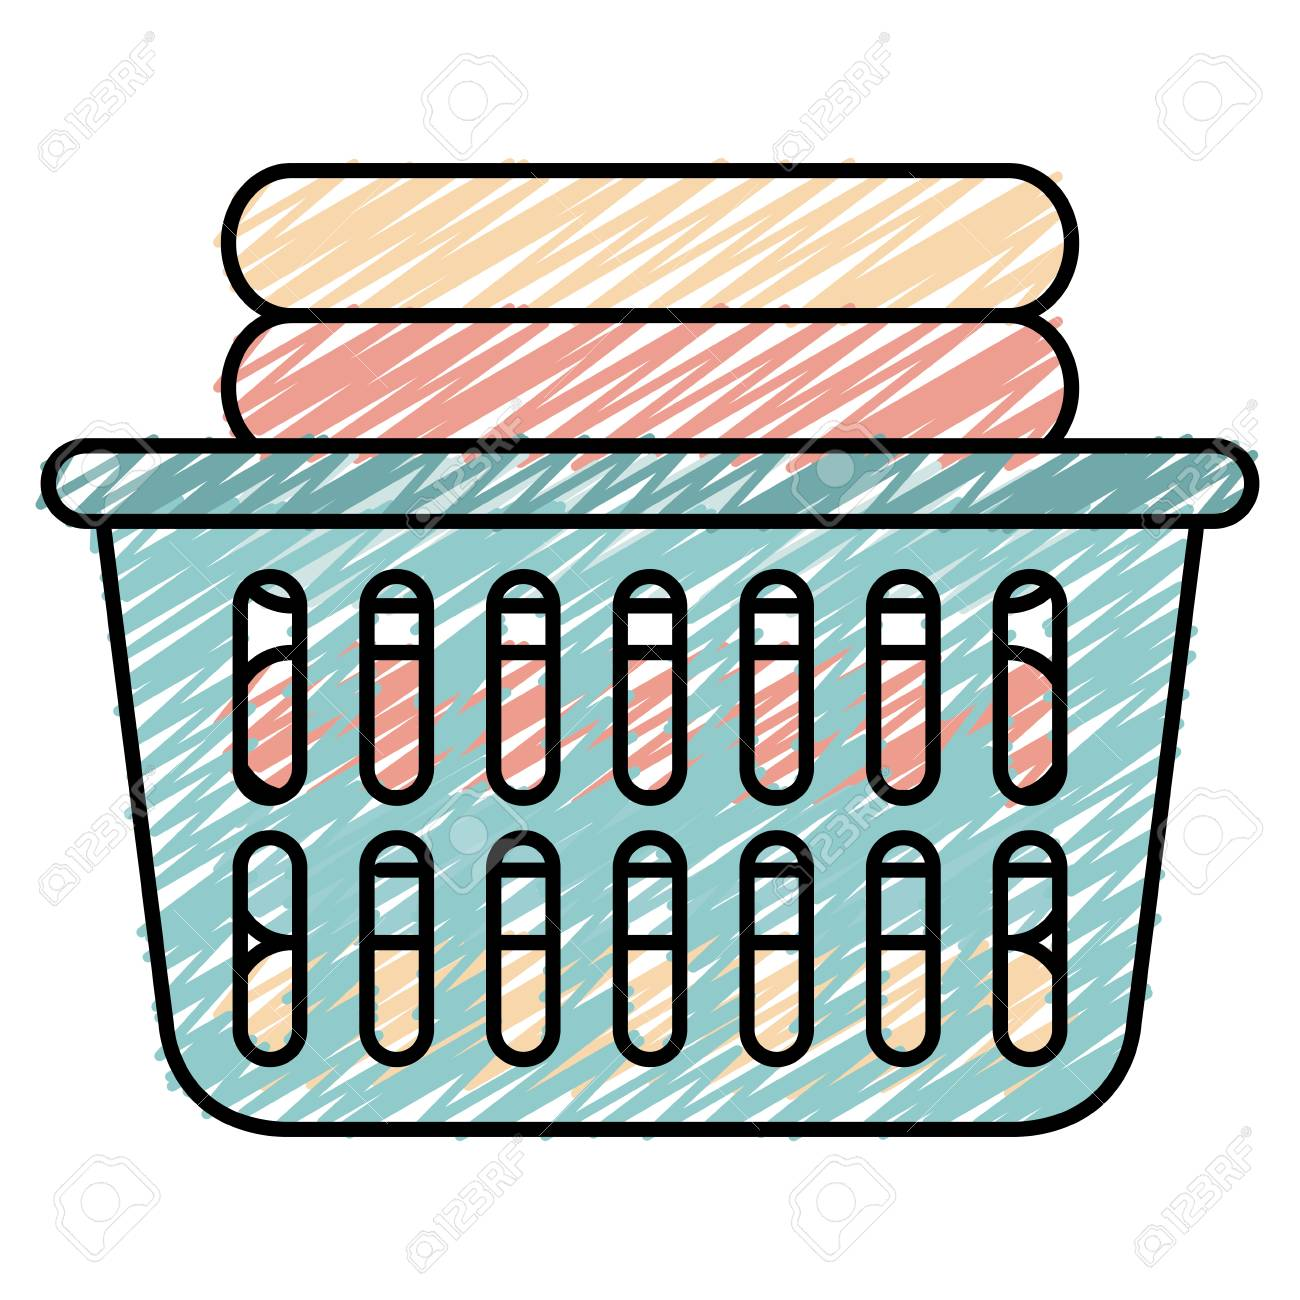 hight resolution of laundry basket with pile of folded clothes vector illustration design stock vector 90402898